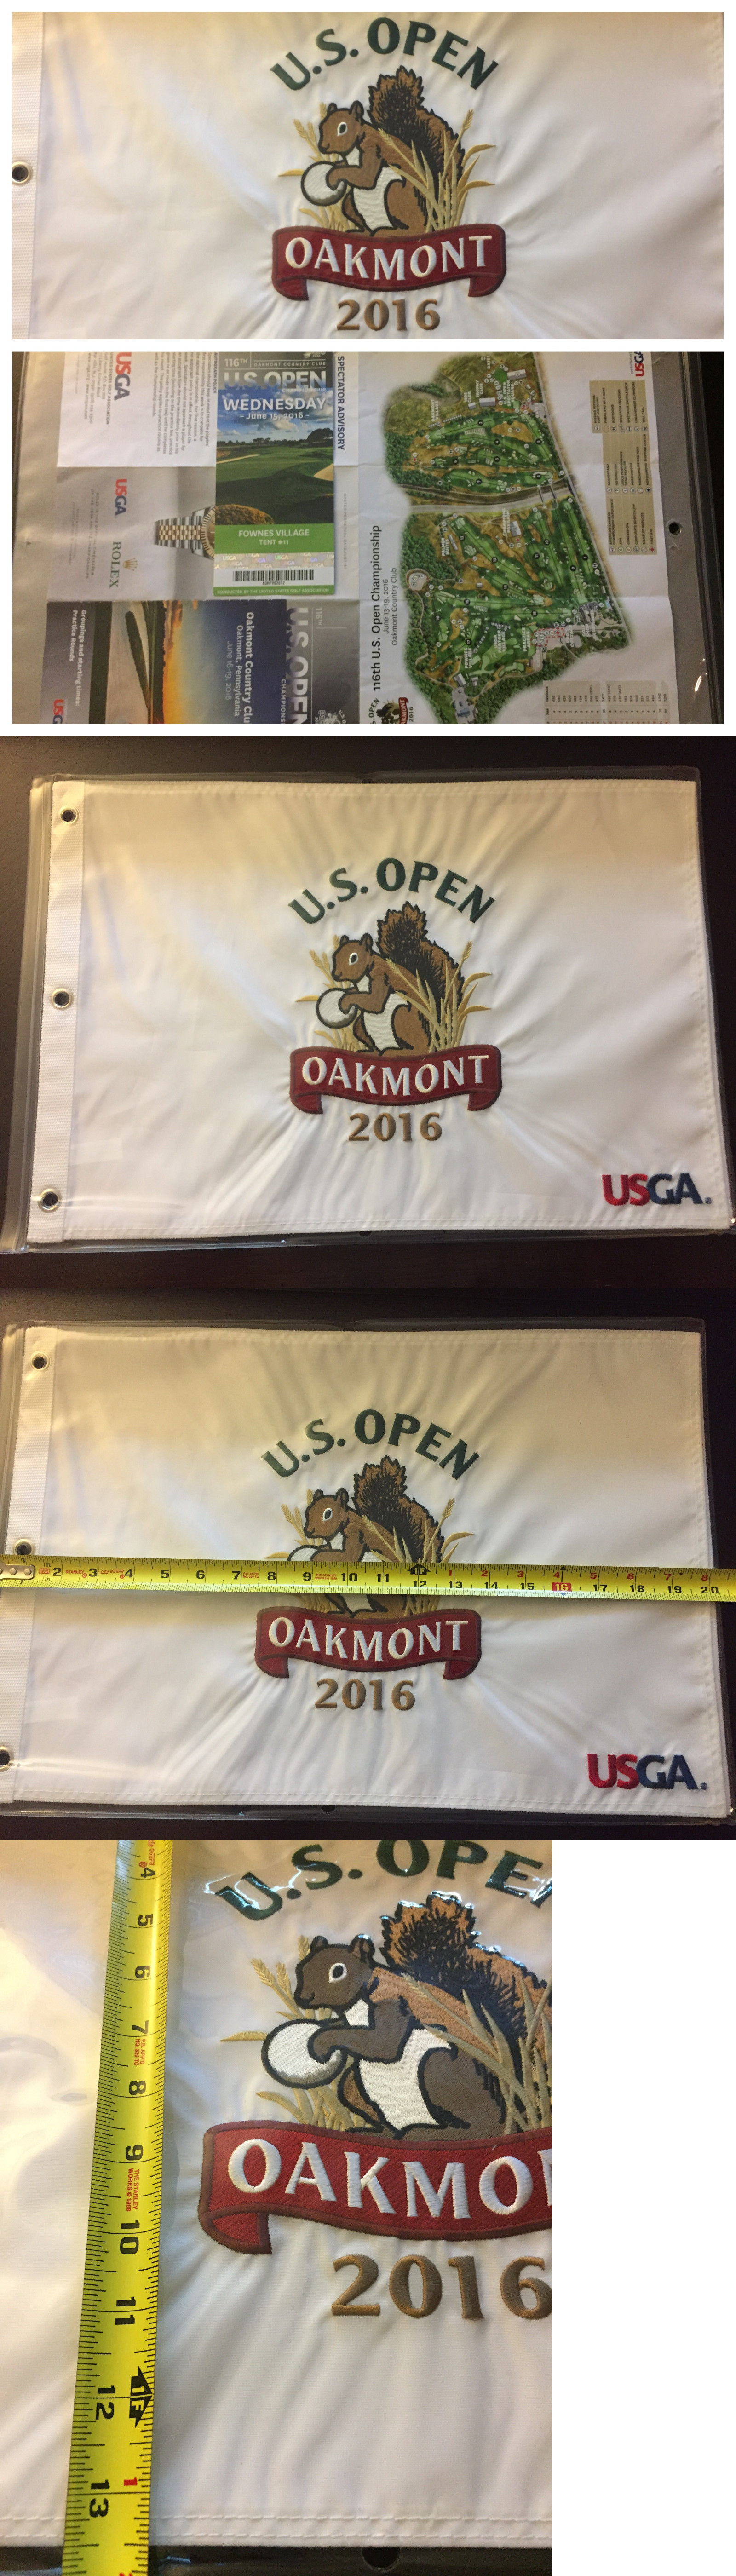 Golf US Open Embroidered Golf Flag Oakmont Cc New - Us open map 2016